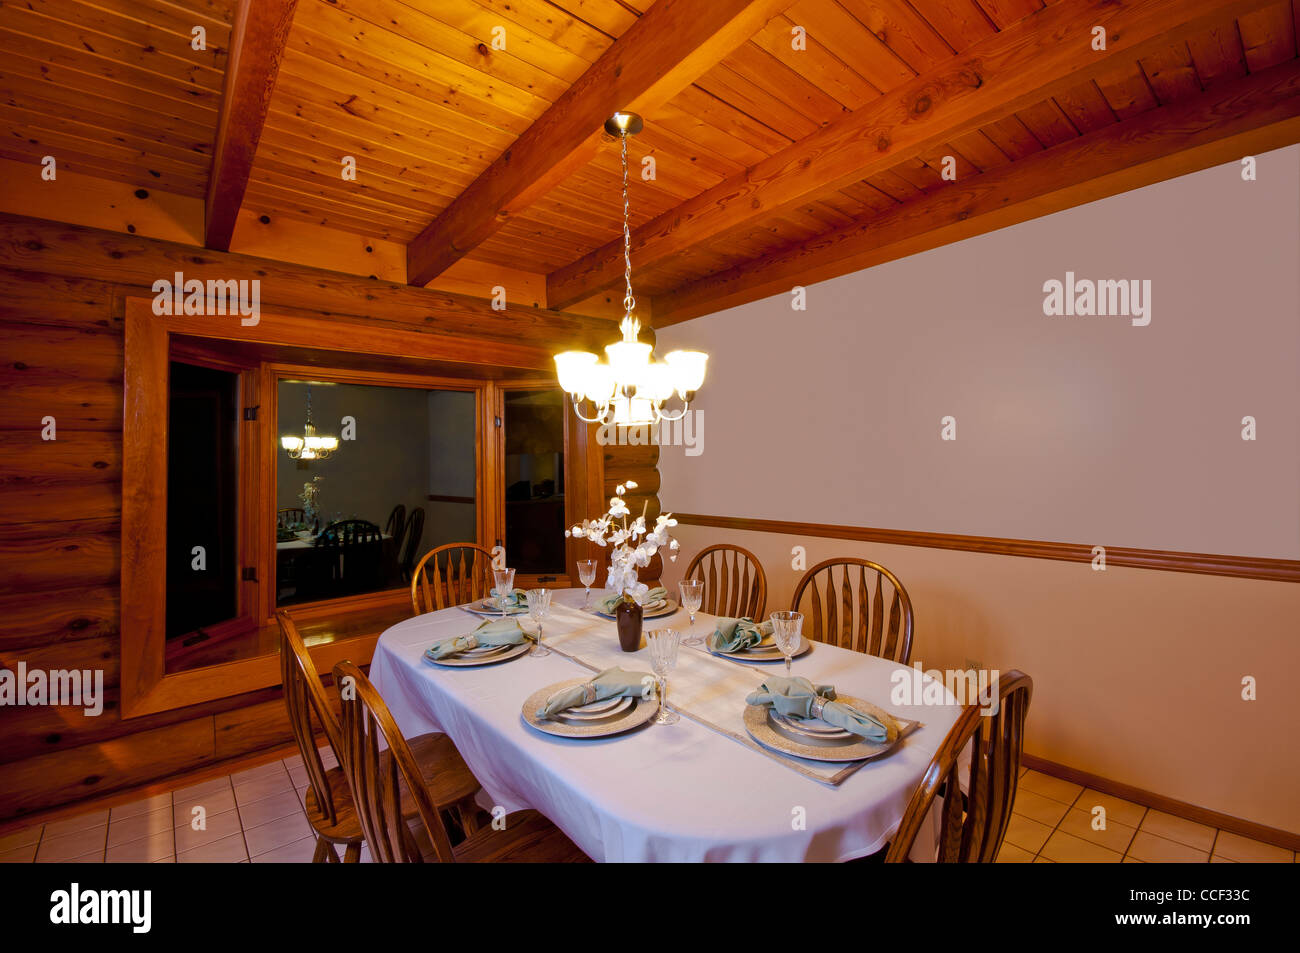 Dining room in rustic luxury log cabin showing table, chairs Stock ...